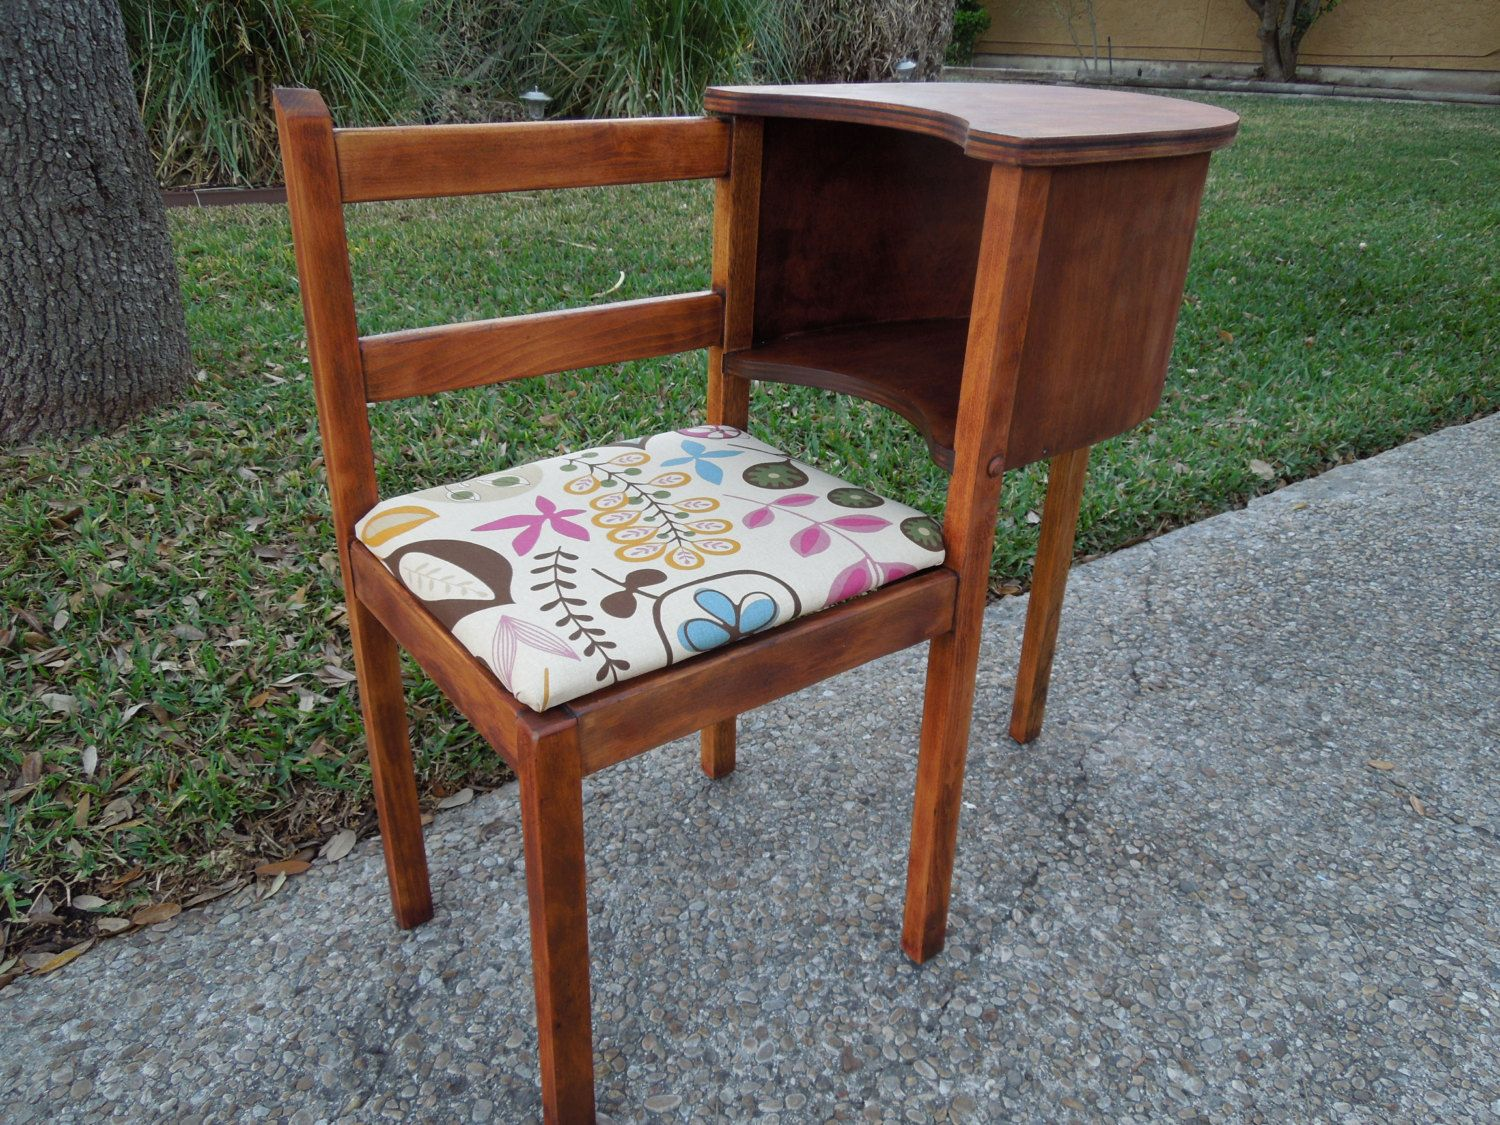 Vintage Telephone Table Gossip Bench Via Etsy Re Do Ideas Pinterest Telephone